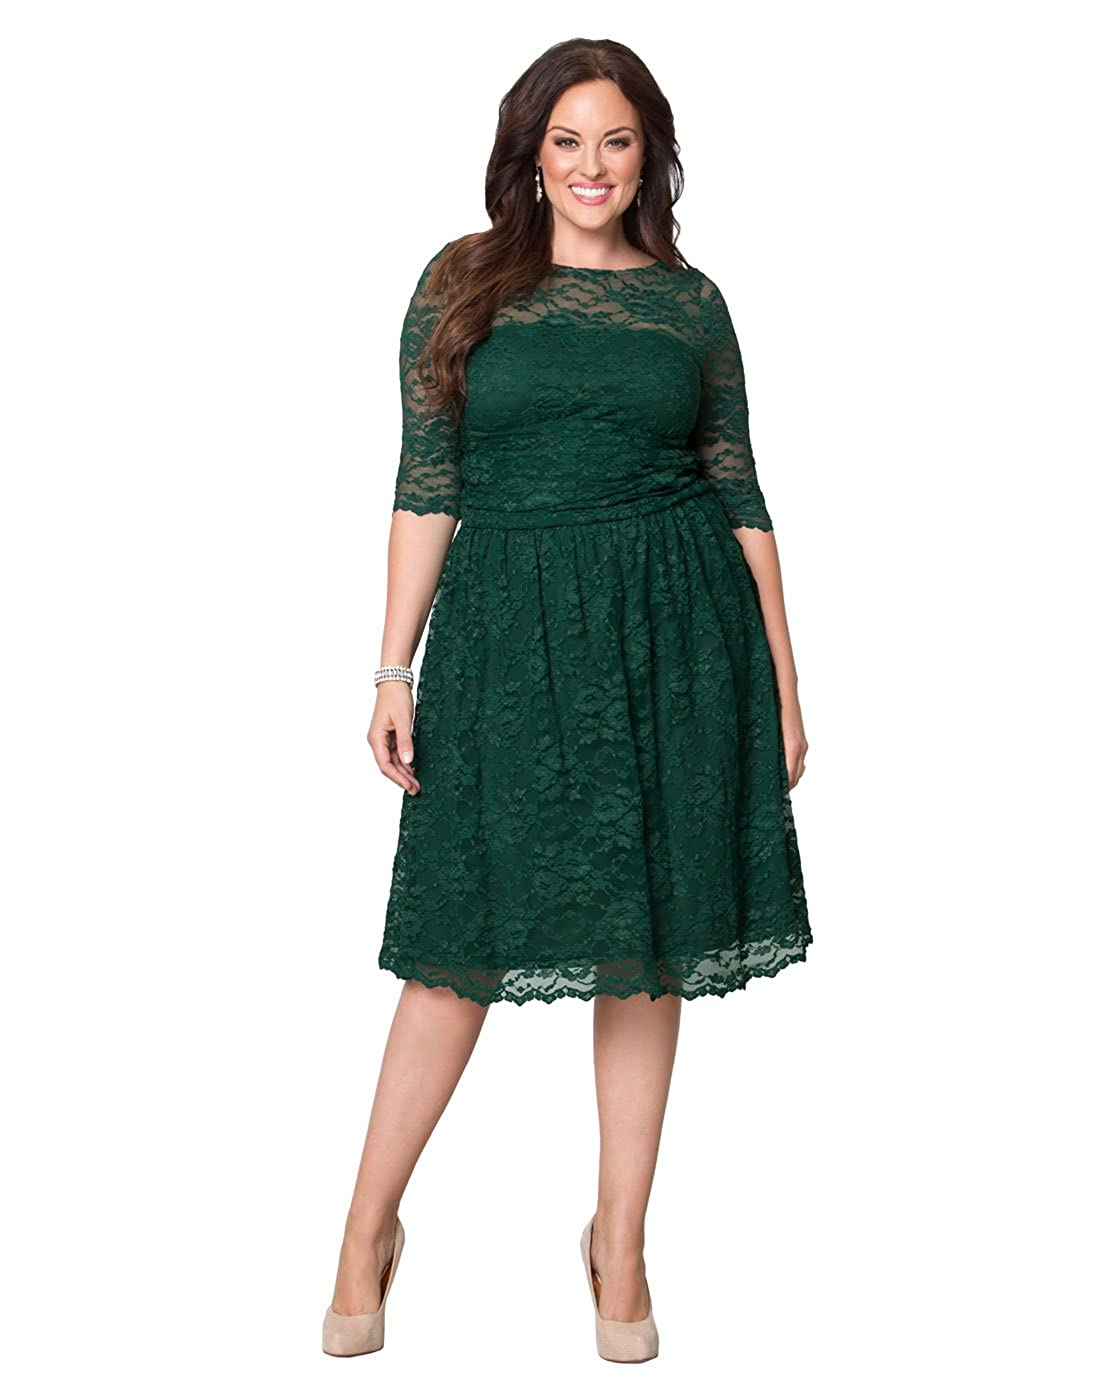 Kiyonna Women's Plus Size Luna Lace Cocktail Dress